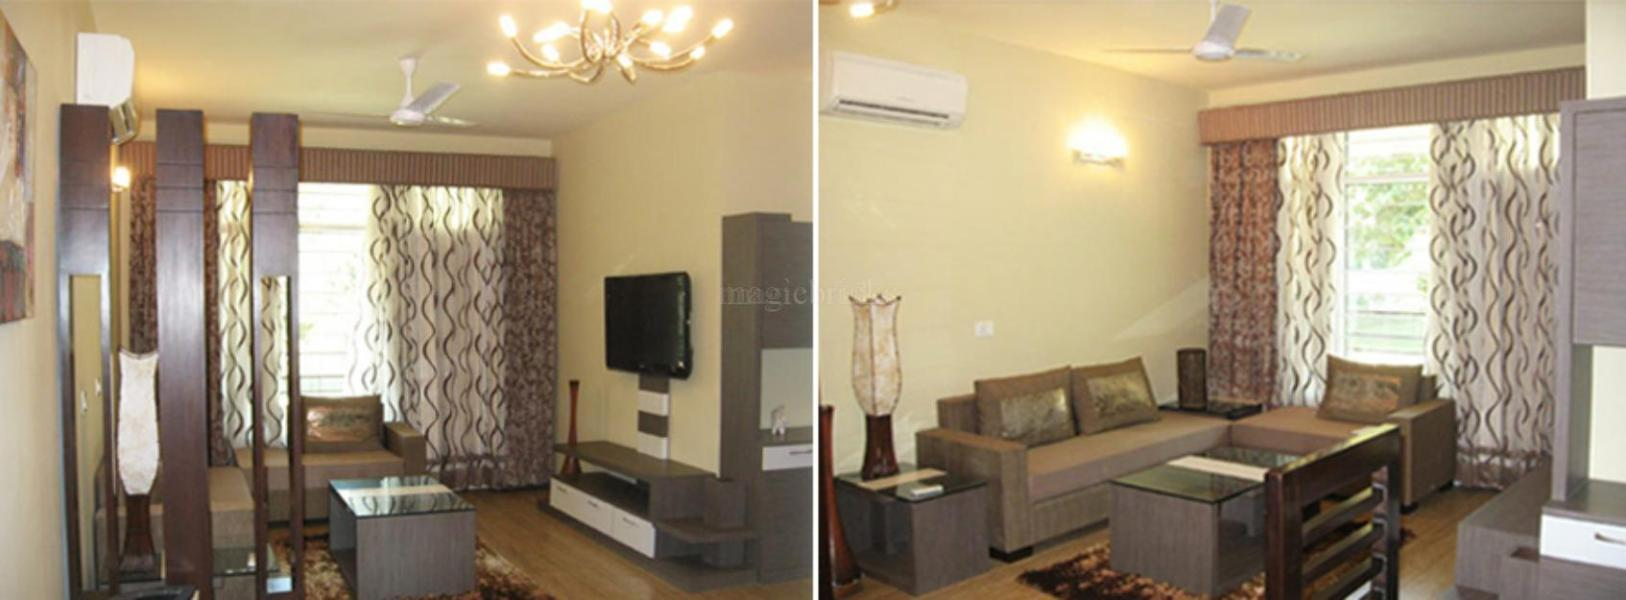 3 bhk flats in haridwar for rent